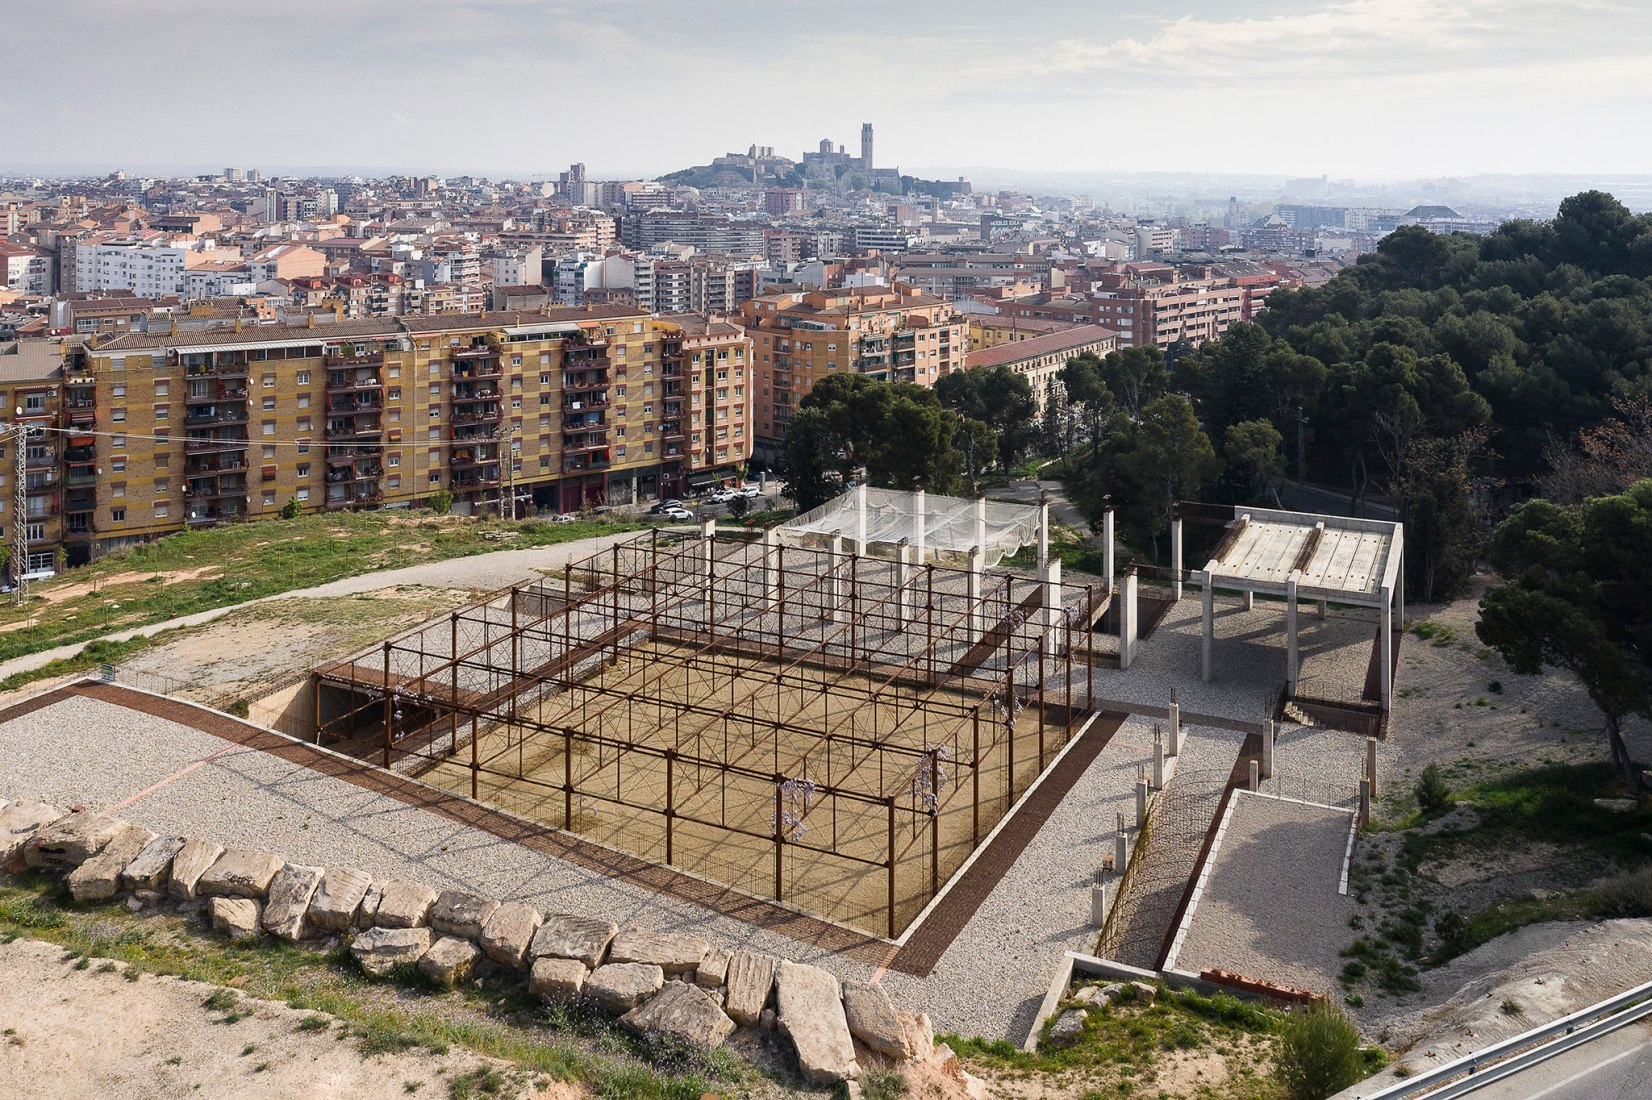 Lleida Climate Museum by Toni Gironès. Photograph by Fernando Alda.